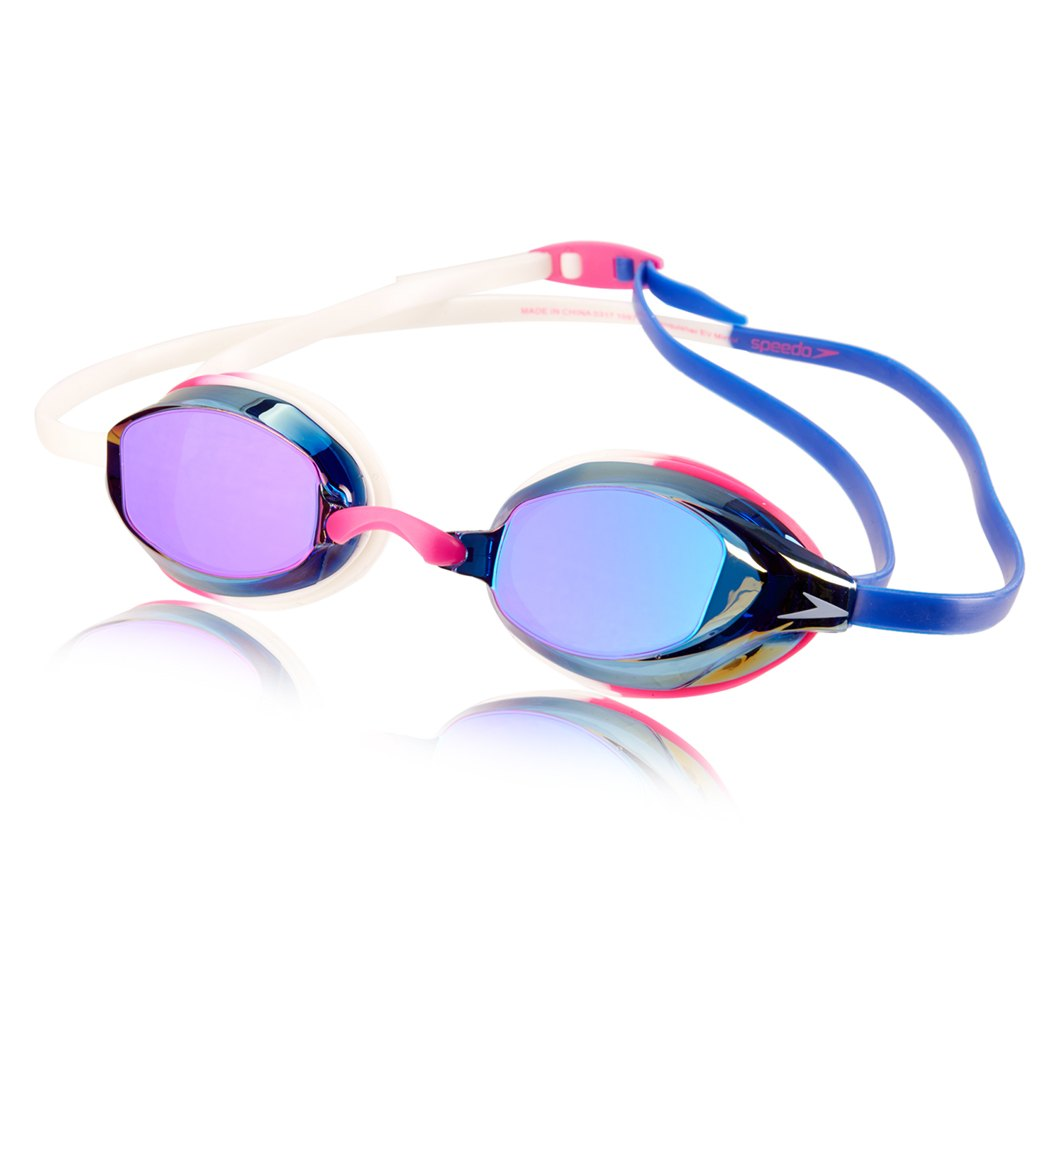 20a09bb6857 Speedo Vanquisher EV Mirrored Goggle at SwimOutlet.com